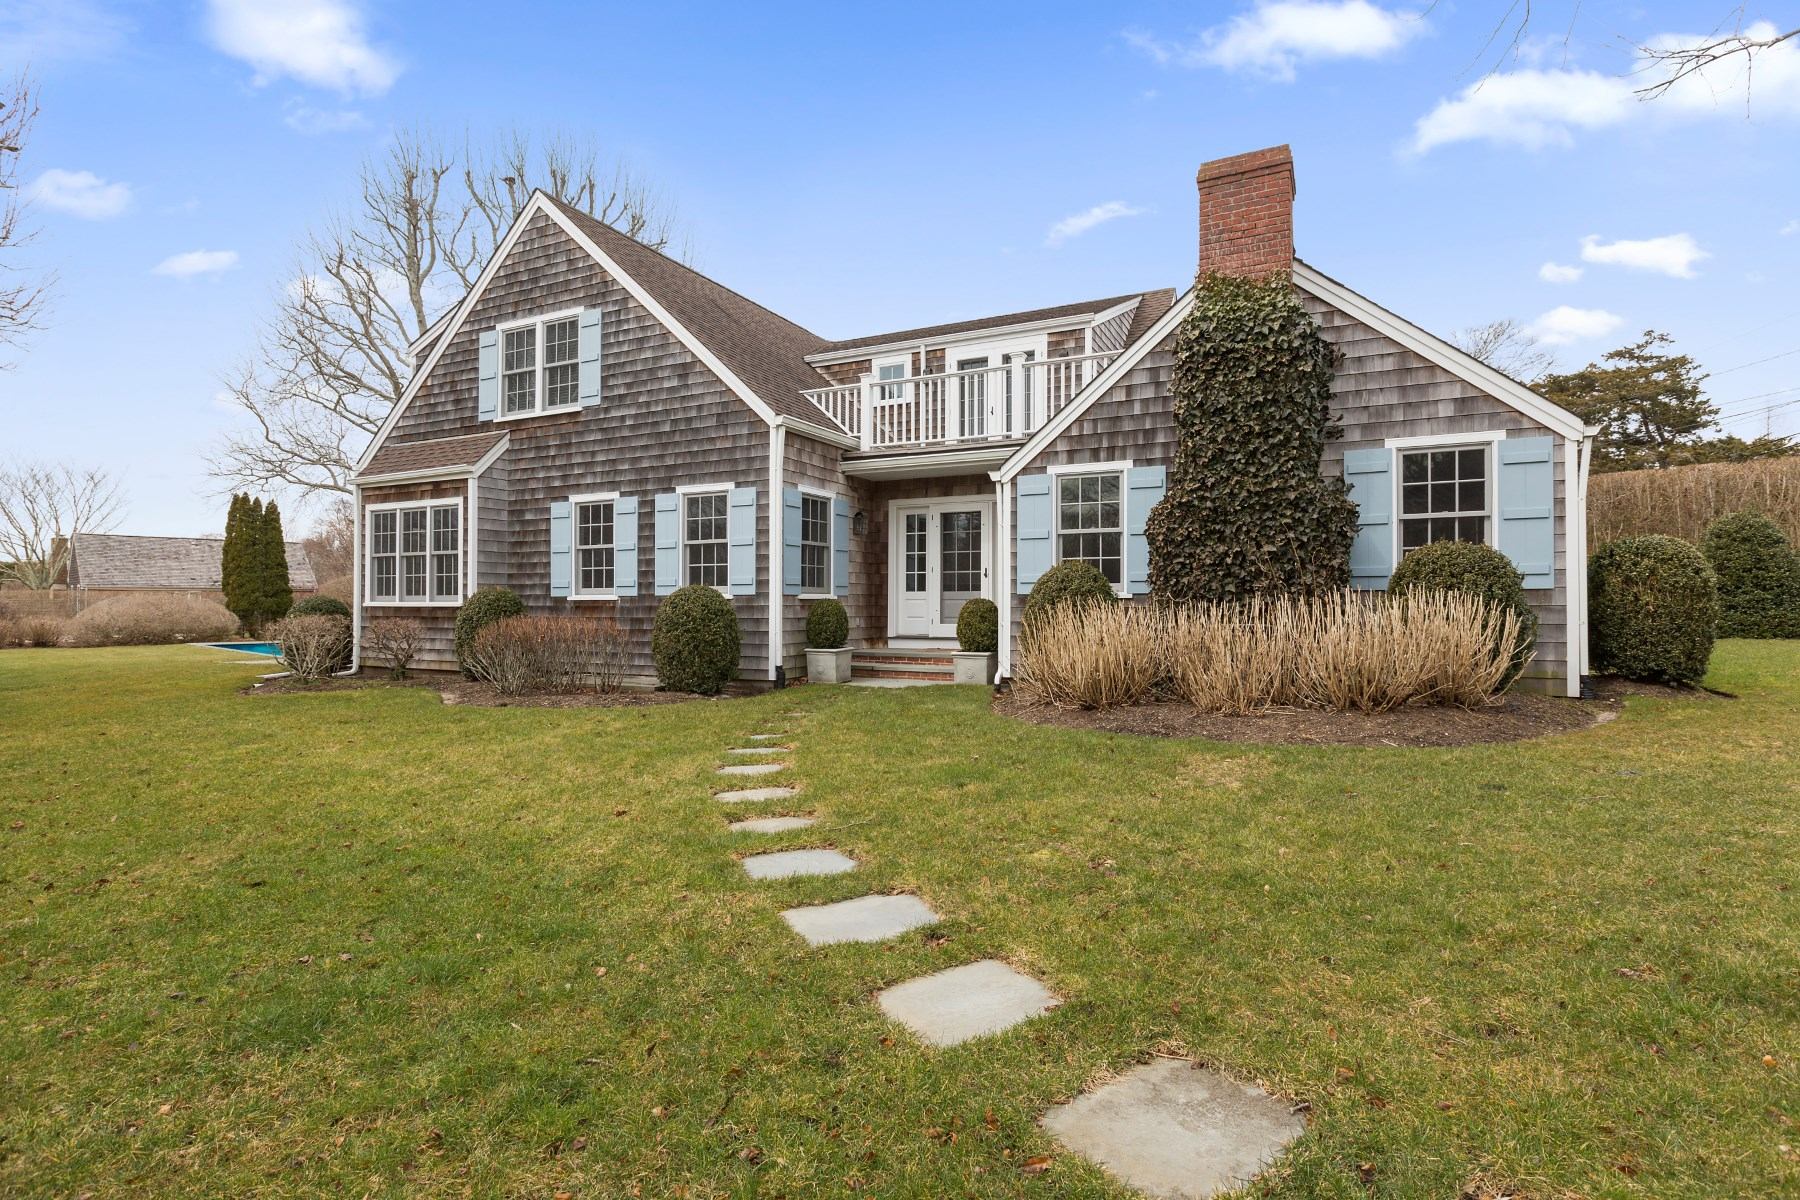 Single Family Home for Rent at NEW AND OLD IN GREAT WAINSCOTT SOUTH Wainscott, New York, 11975 United States